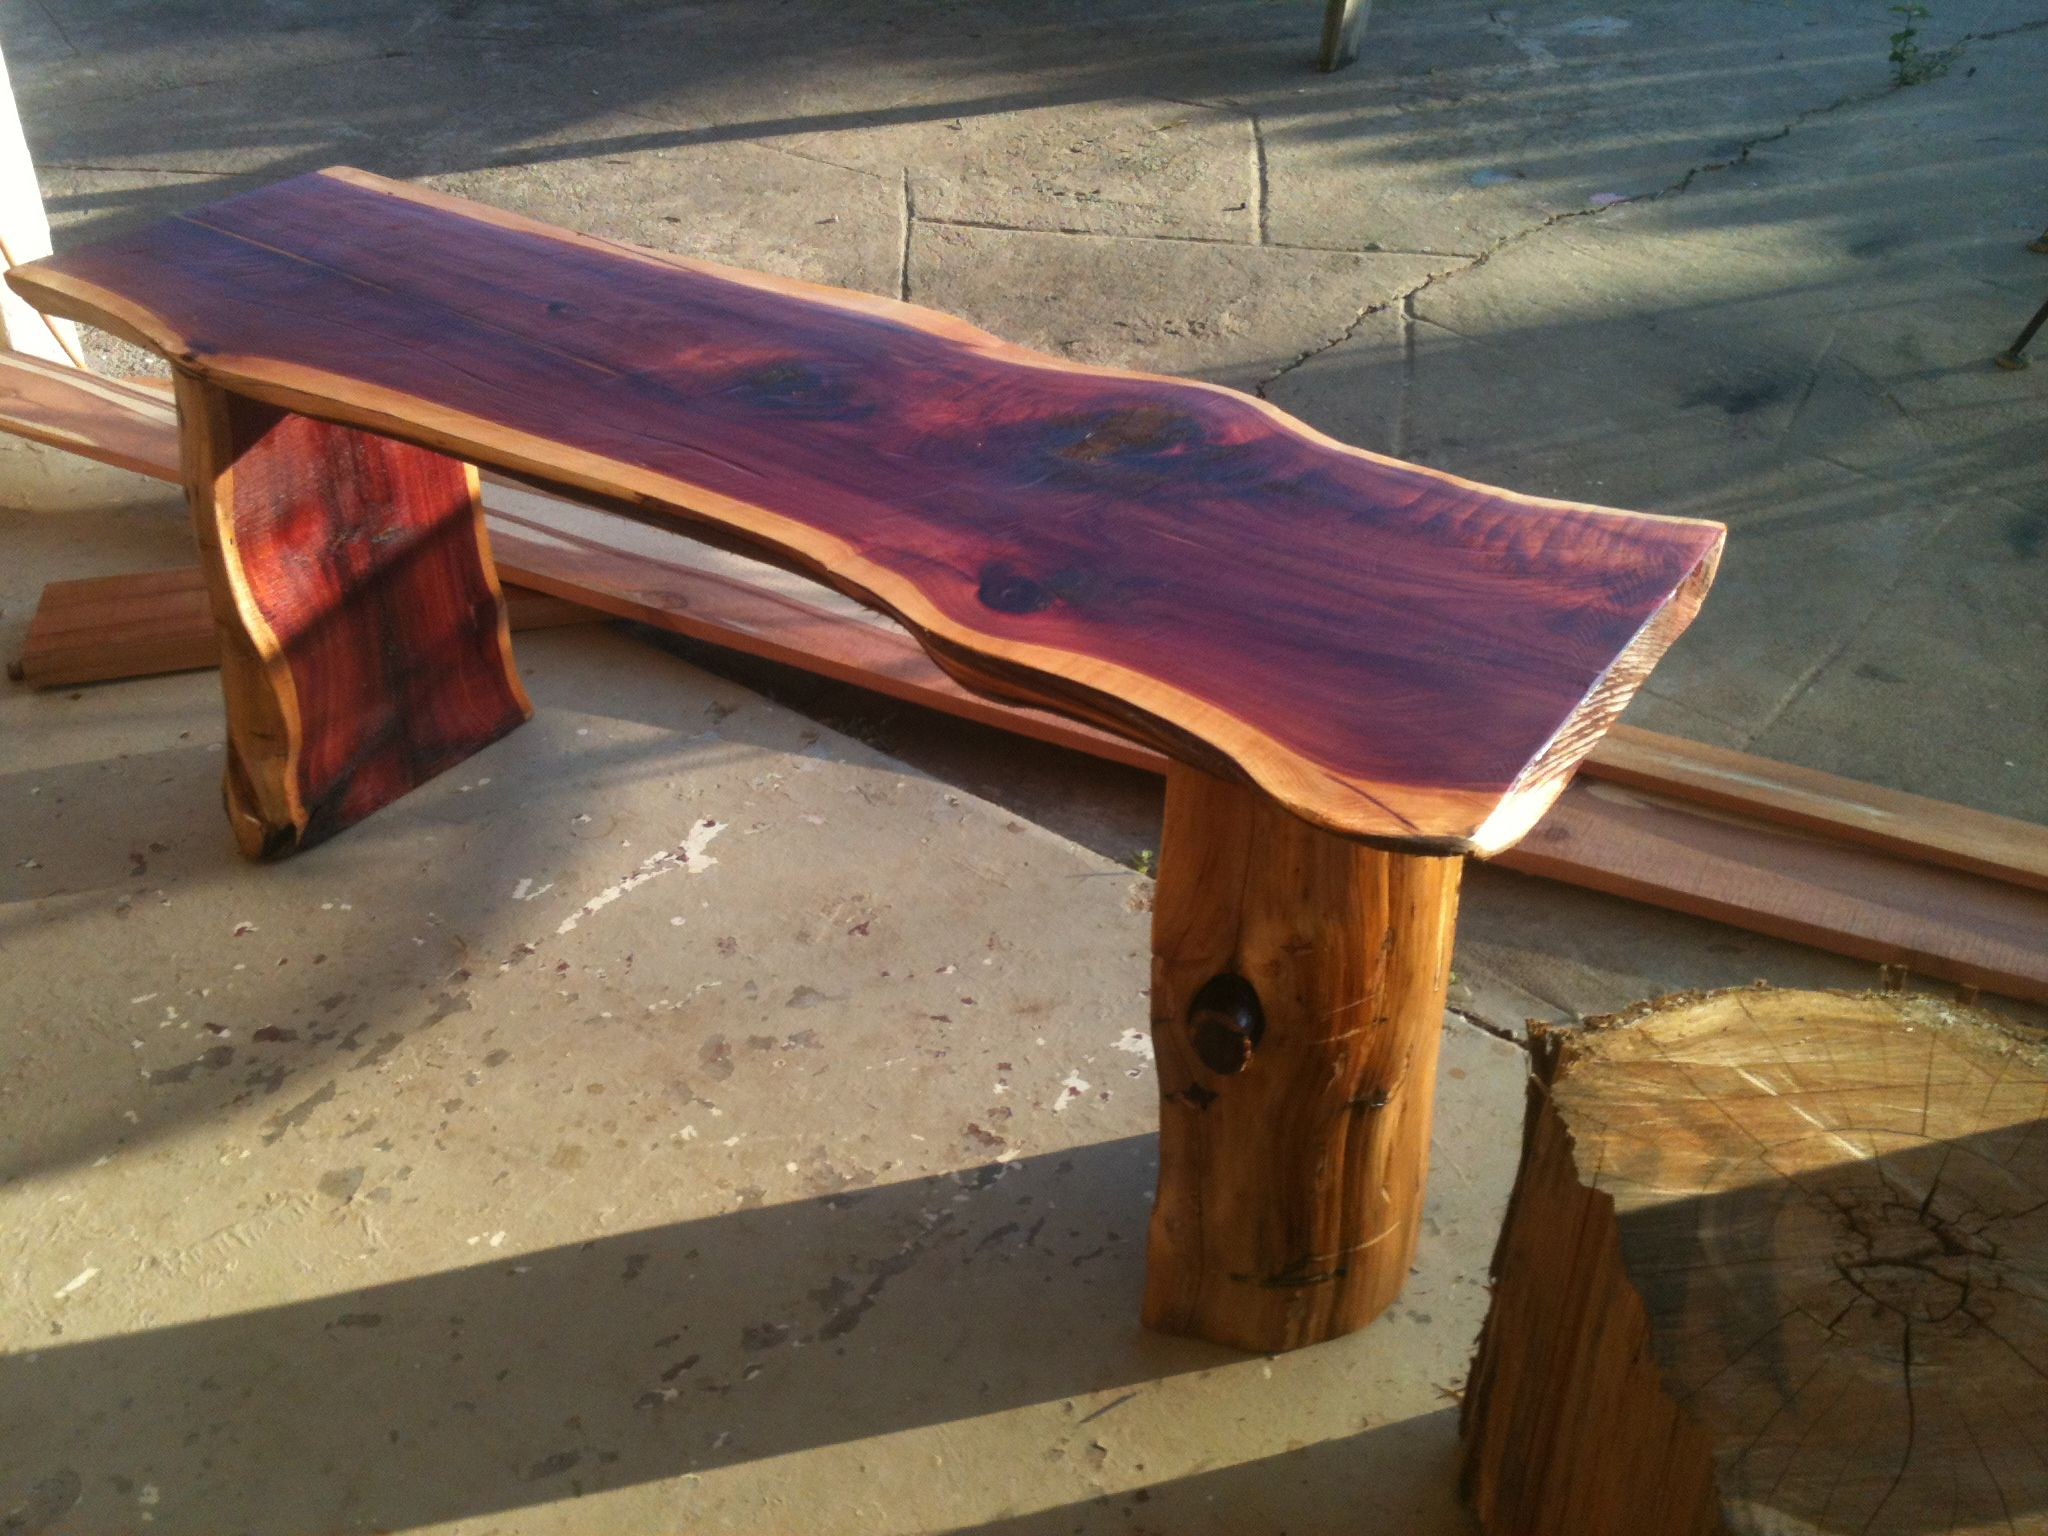 This Is A 4ft 2 Thick Cedar Bench I Made Ronbond Cmaaccess Com Cedar Wood Projects Barn Wood Projects Furniture Design Wooden